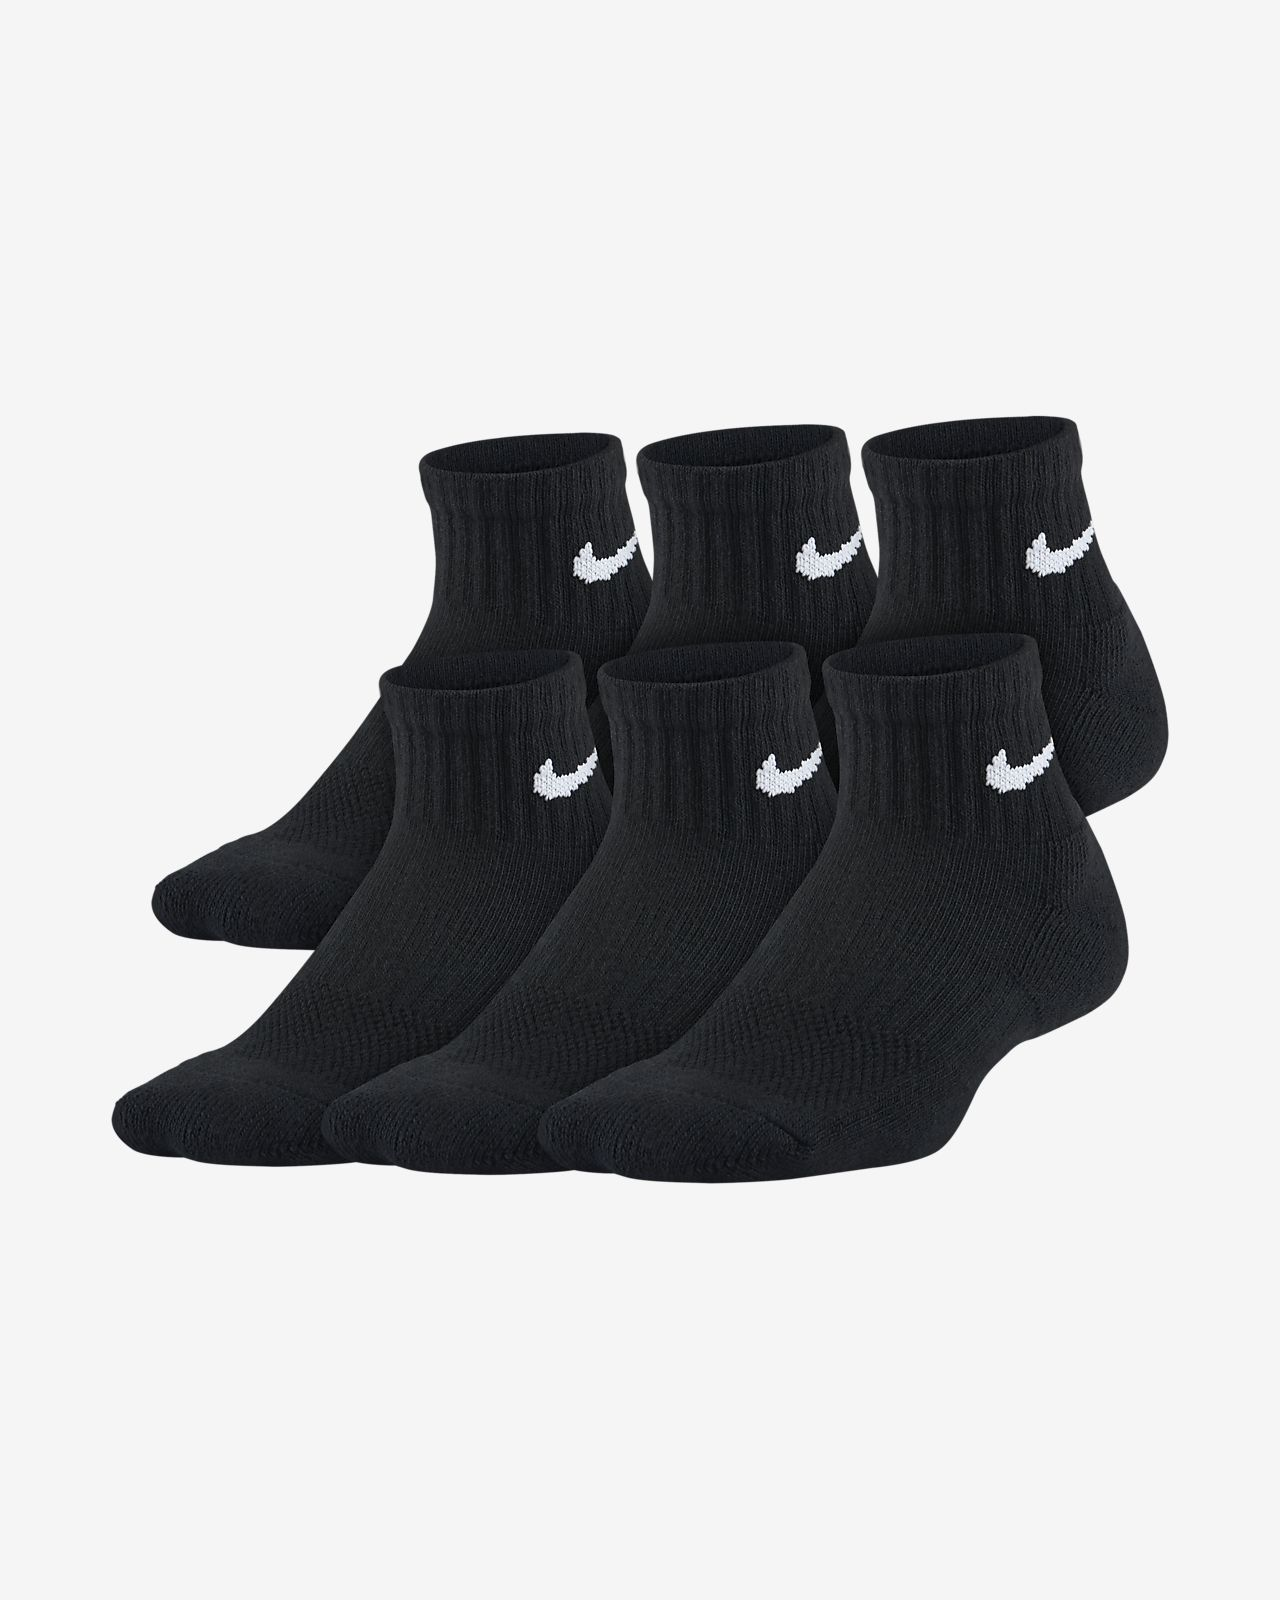 última tecnología estilo clásico mejor online Nike Performance Cushioned Quarter Kids' Training Socks (6 Pair ...